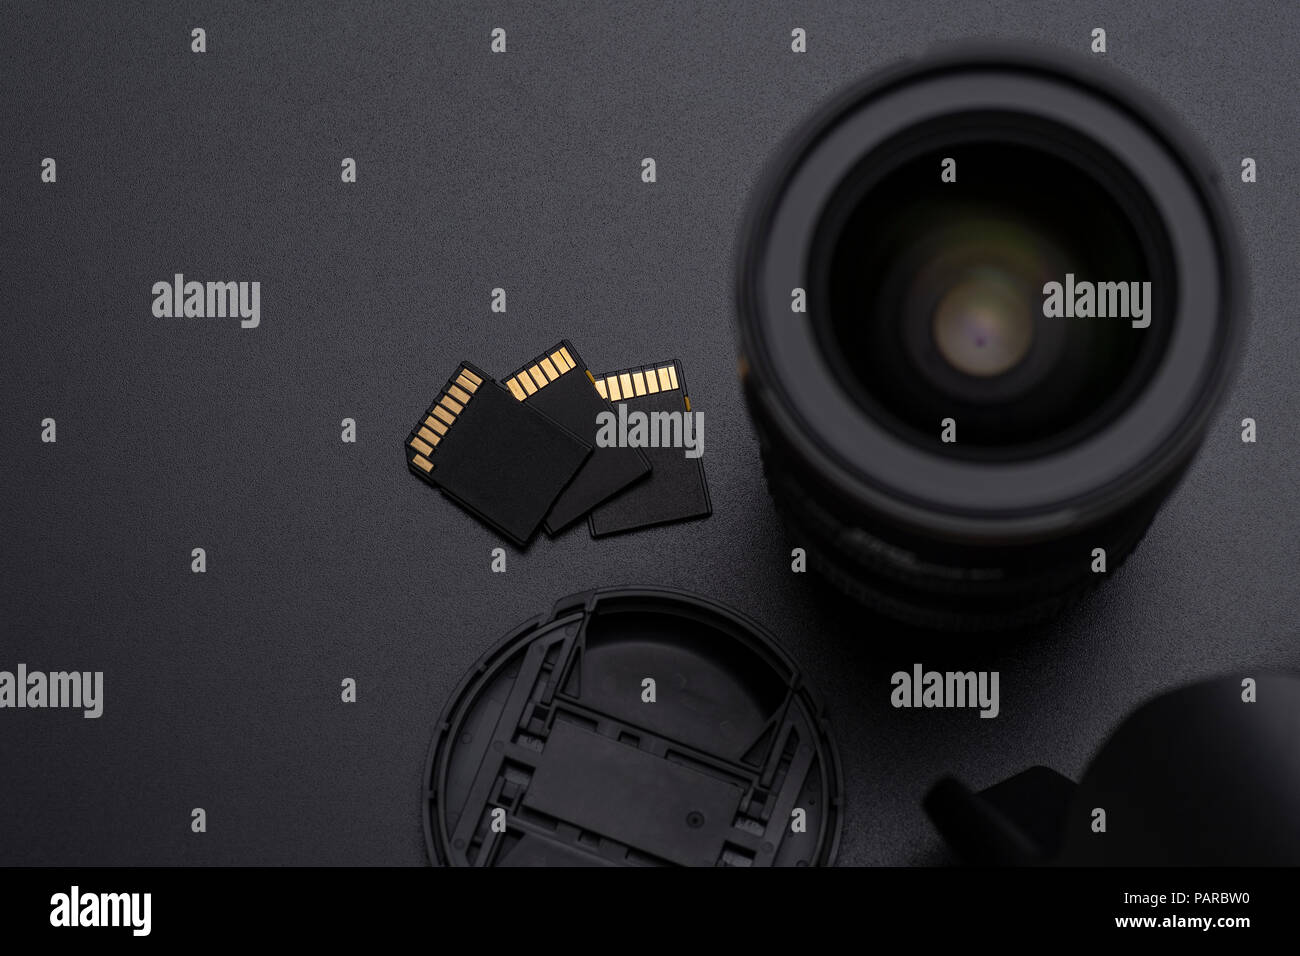 Photo DSLR camera or video lens, SD memory cards, hood and front cap close-up image on black background - Stock Image